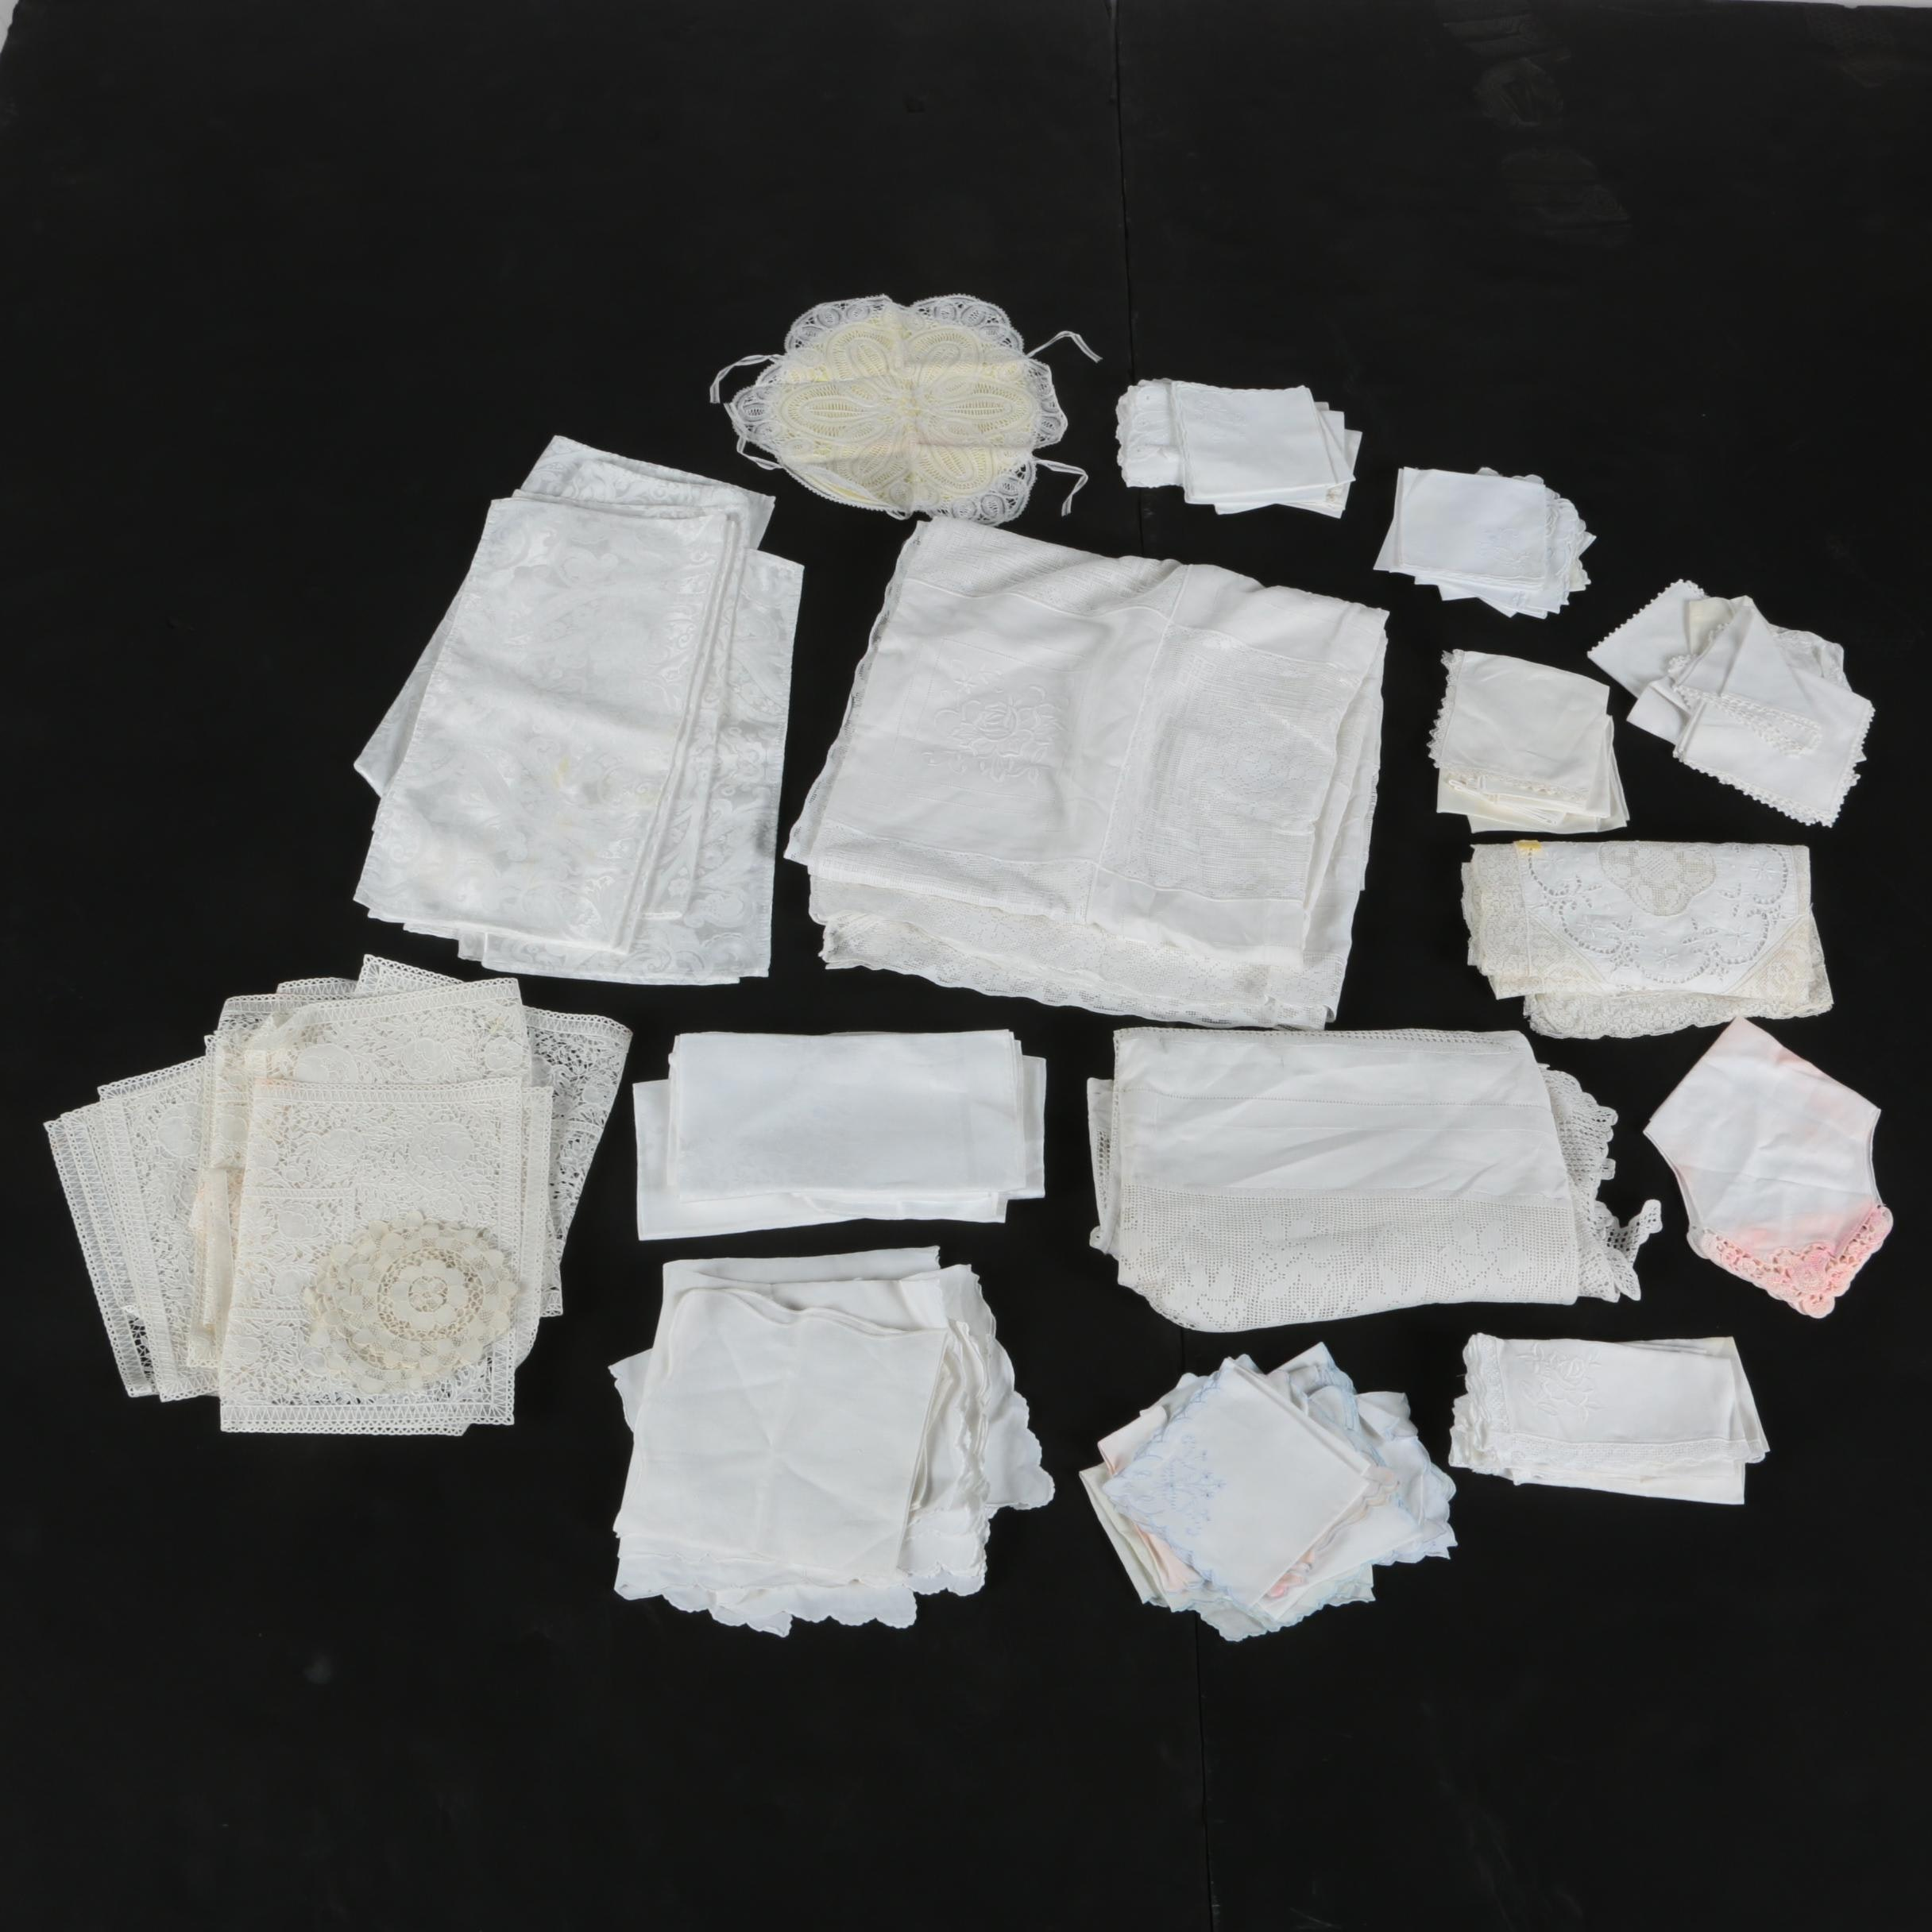 Table Linens Including Doilies and Ralph Lauren Napkins